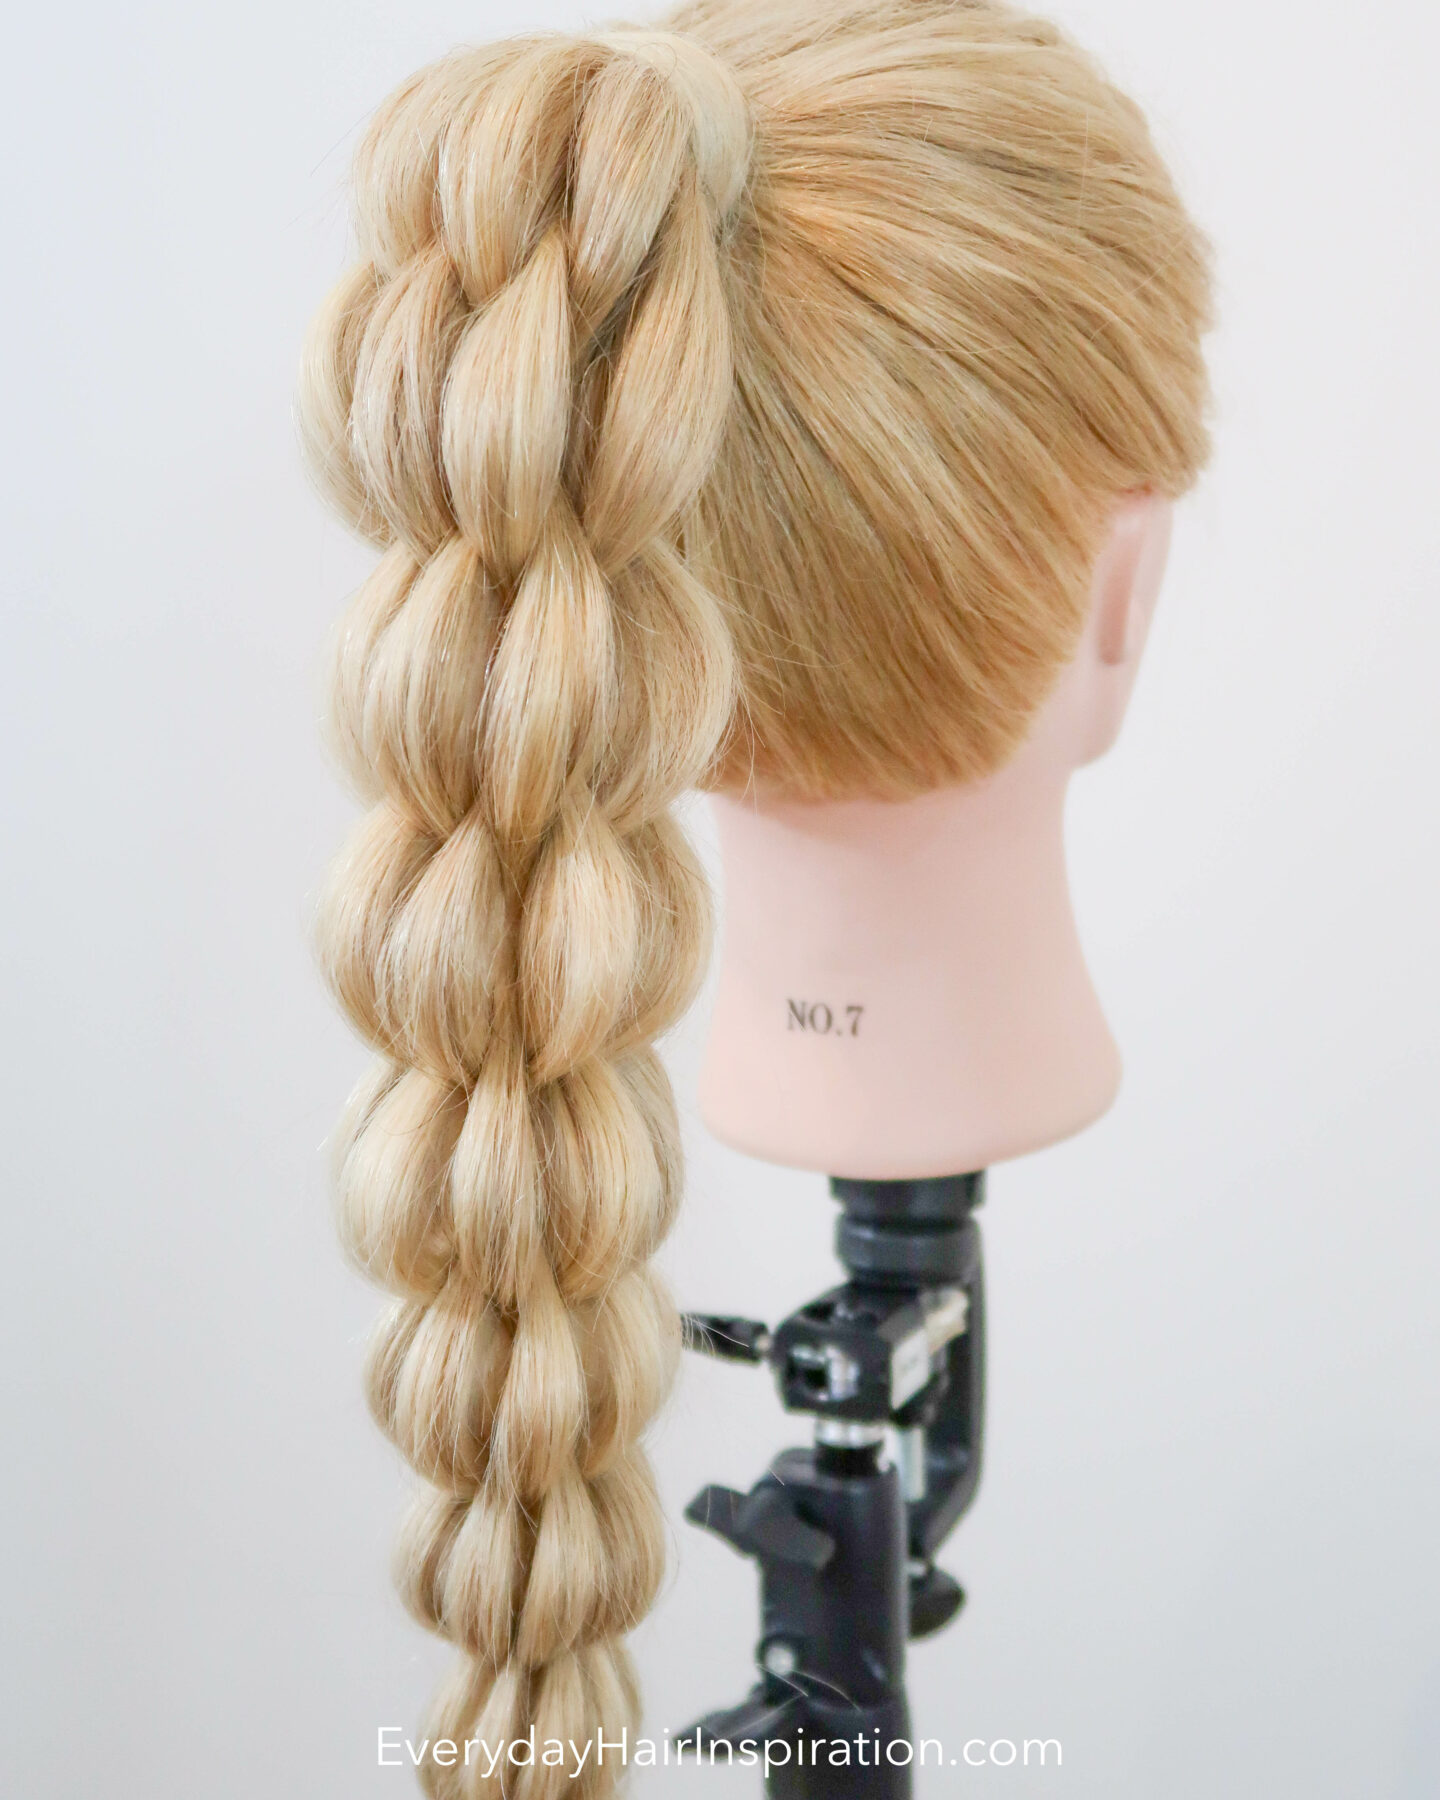 Blonde hairdresser doll seen from the back at an angle with a high ponytail in the hair. The ponytail is braided into a 3d pull through braid.